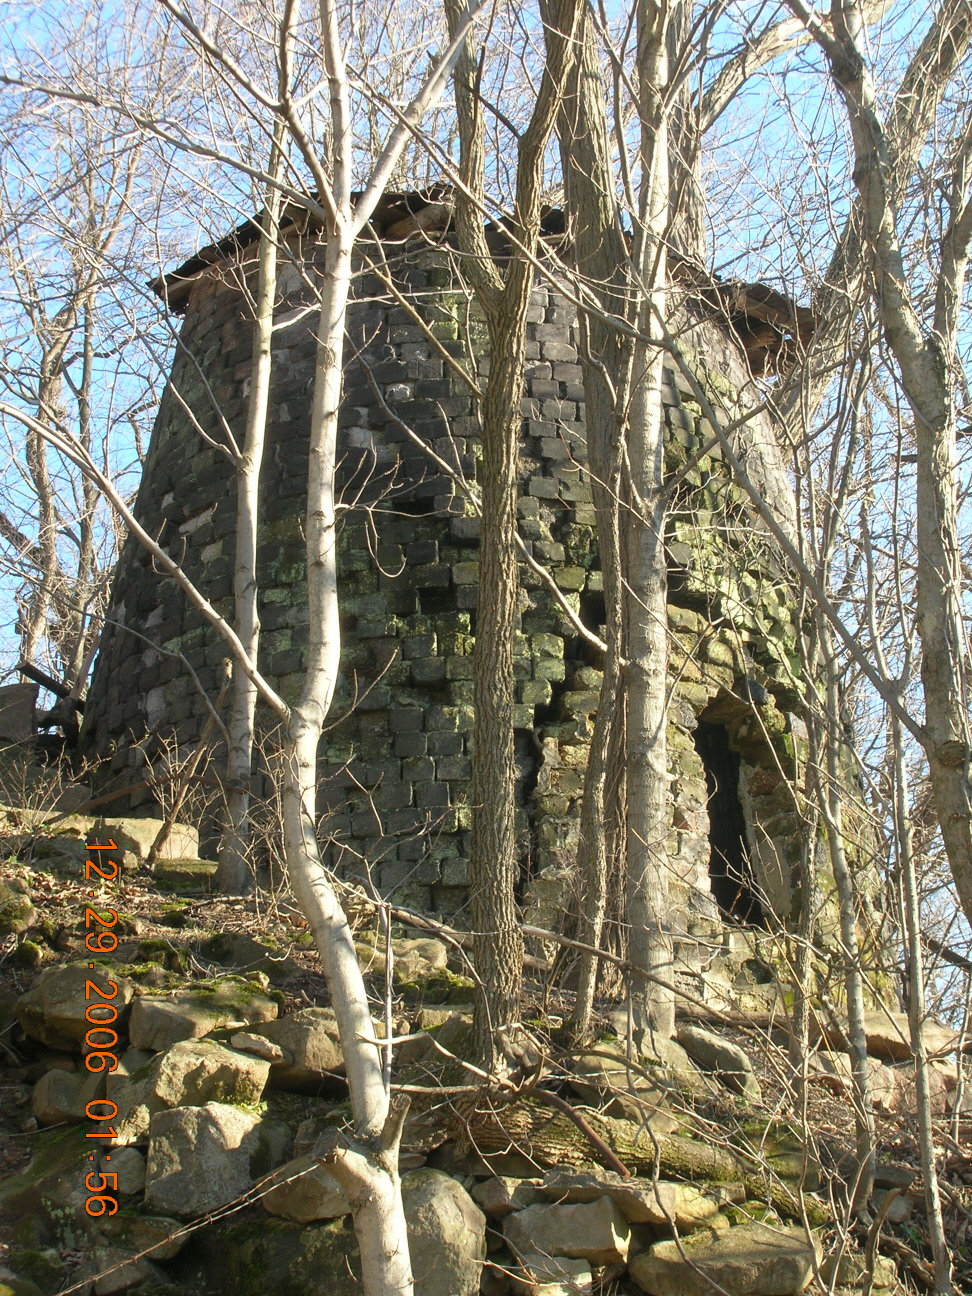 2007 photo of the ruins of the Wellersburg Iron Furnace